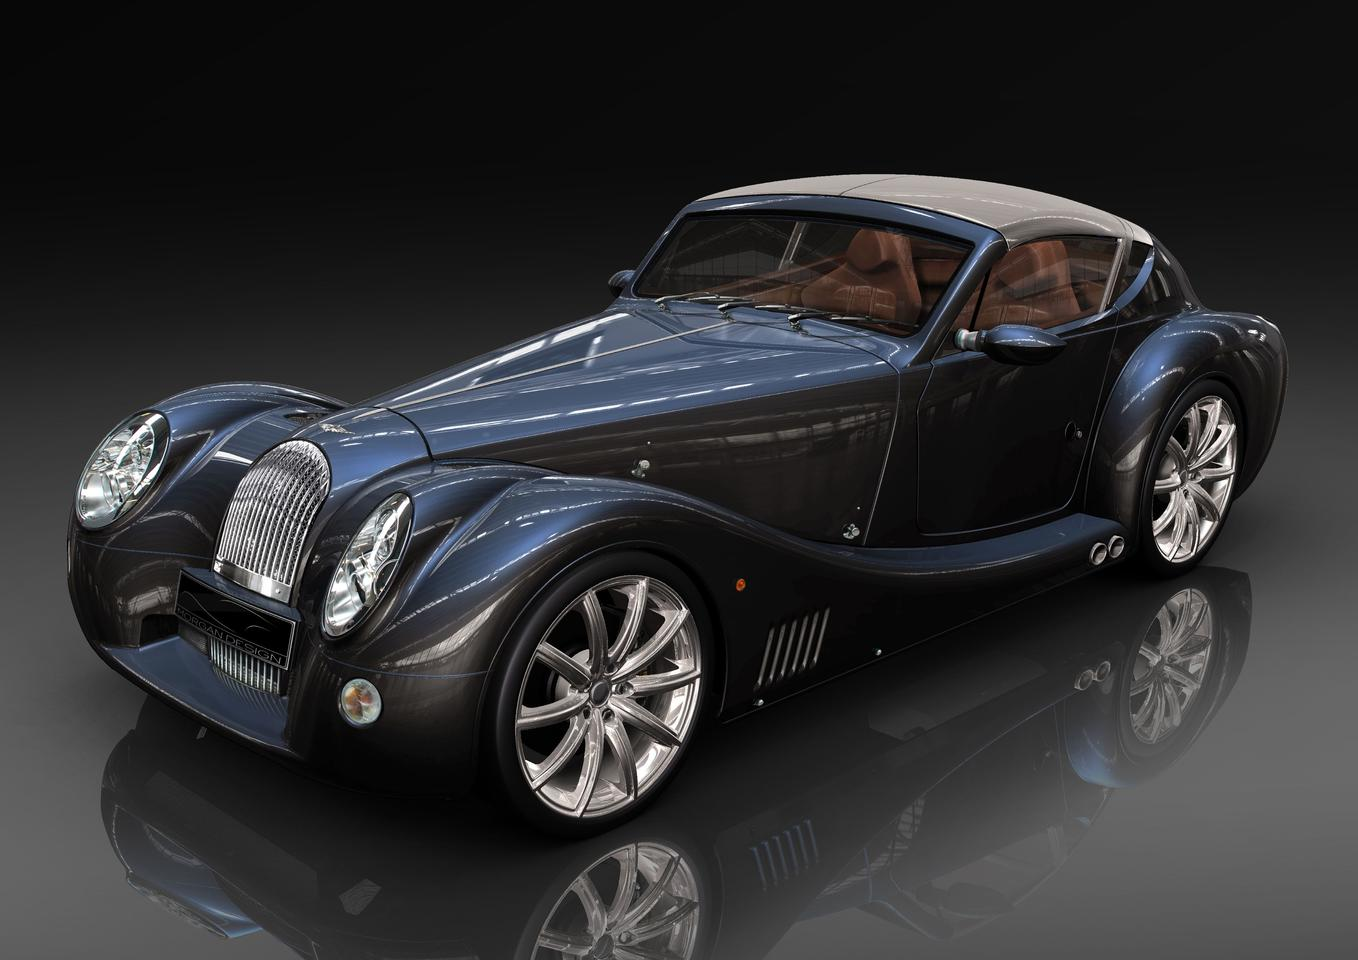 The Morgan Aero SuperSports, which will serve as the base for the electric concept